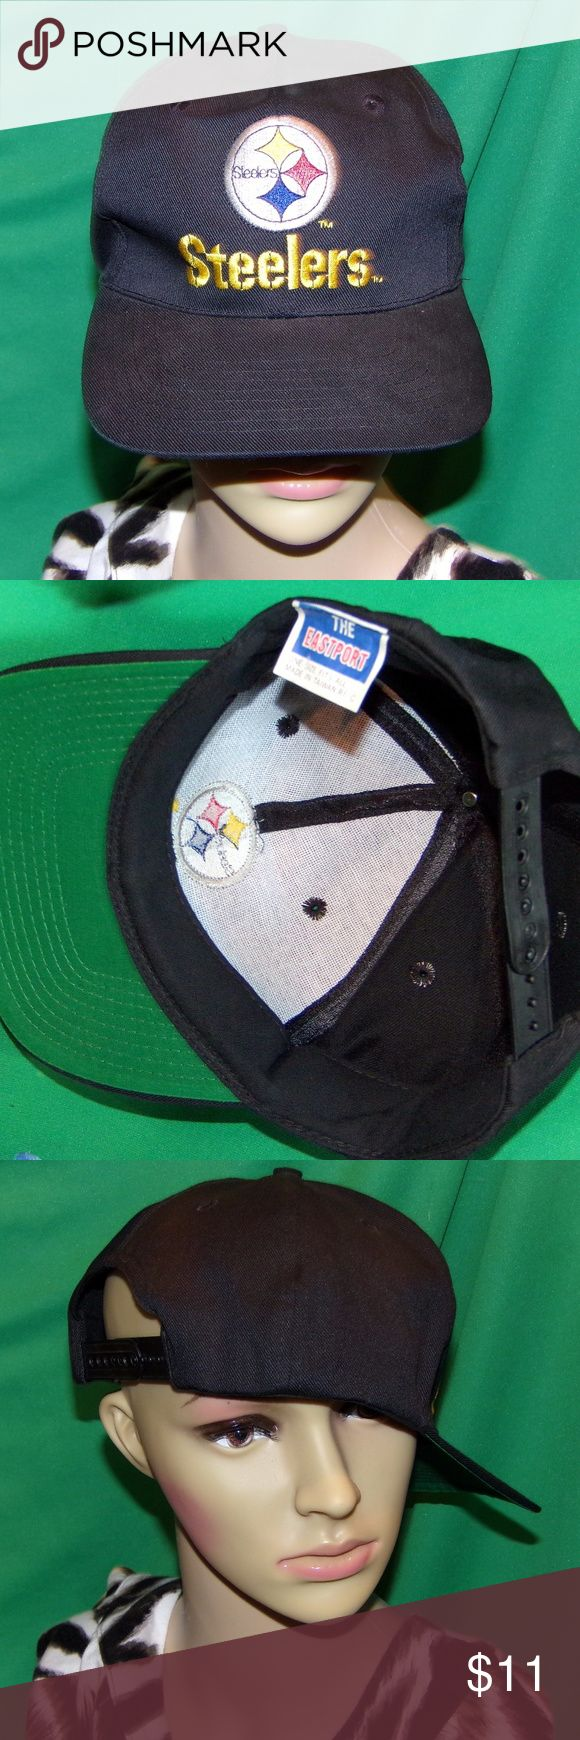 Pittsburgh Steelers Hat,  Vintage Embroidered NFL Pittsburgh Steelers Hat,  Vintage Embroidered NFL Baseball Cap, LOW & FAST Shipping. This is a black hat with green under the brim color. The hat is from a collection and is unworn and unused. It is near impossible to find things from the late 80's early 90's in this condition.Another fine deal brought to you & checked by our crack team of inspection fairies who have given it their two wings up kiss of approval so you can buy with confidence…